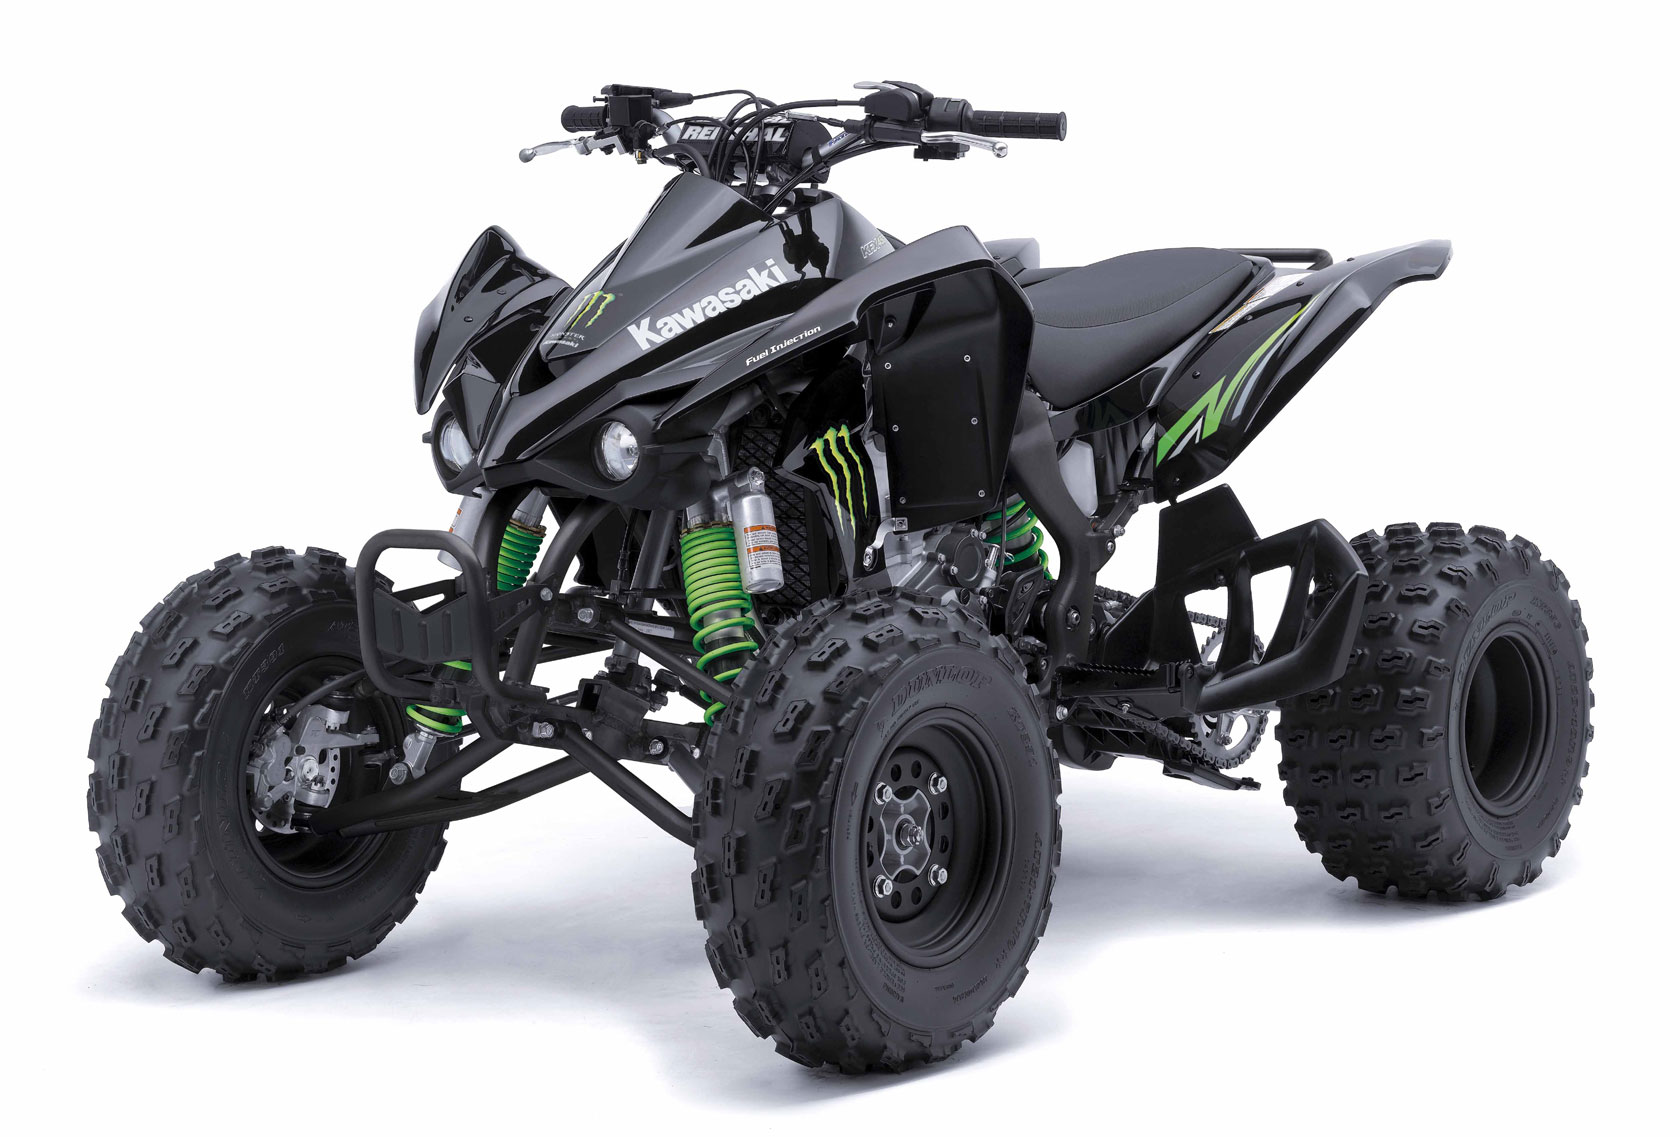 kawasaki kfx 450 r pics specs and list of seriess by. Black Bedroom Furniture Sets. Home Design Ideas